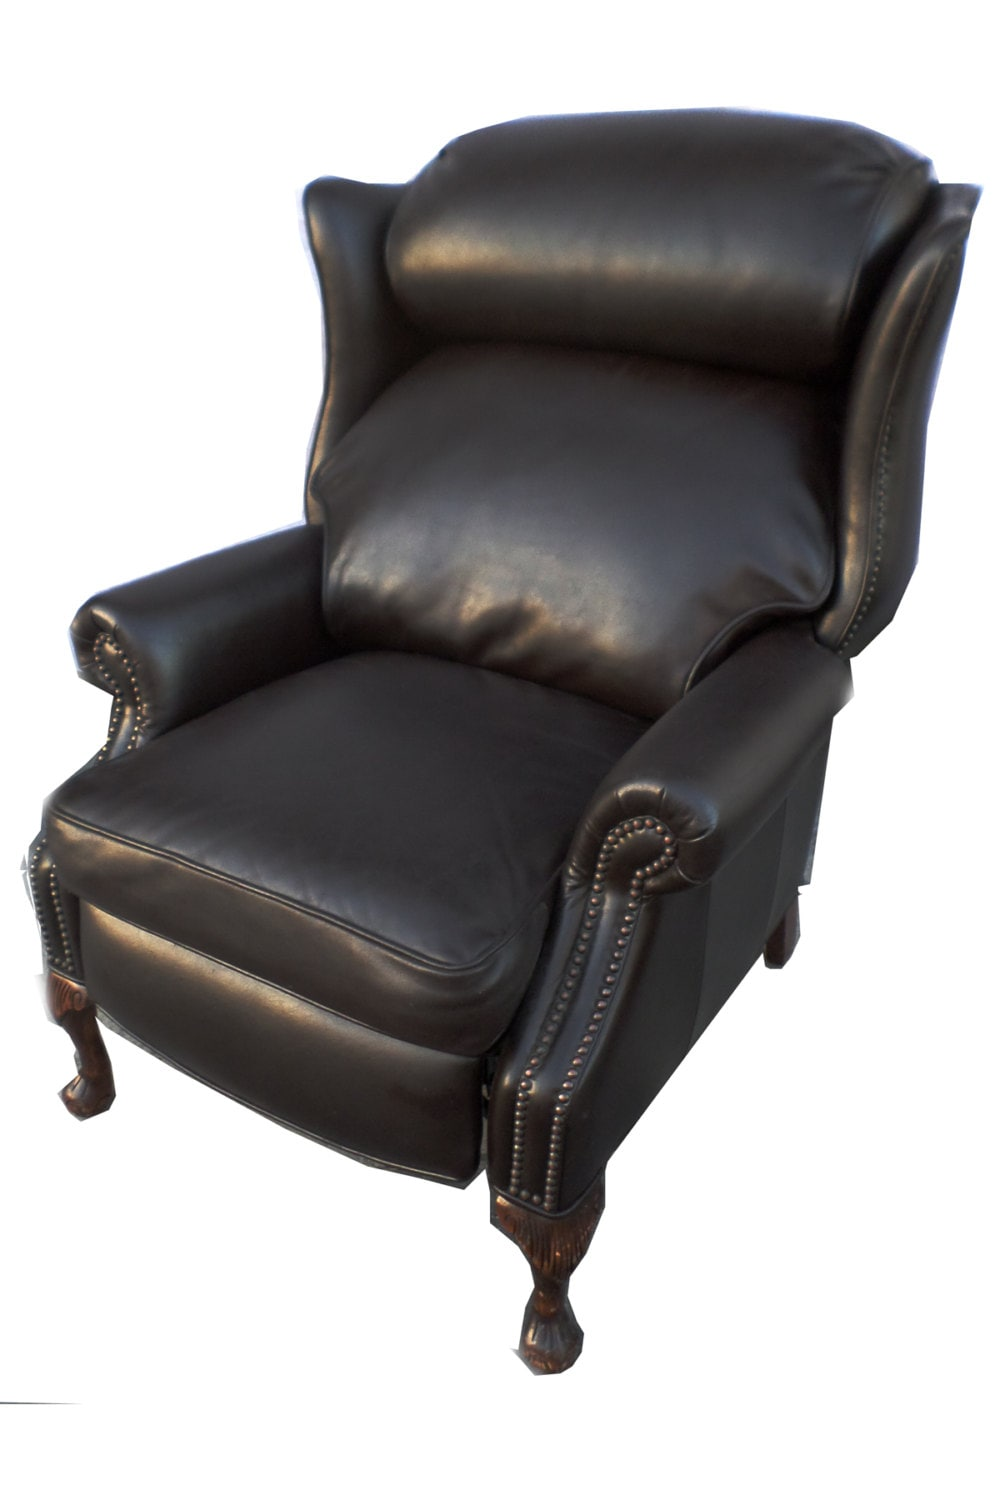 Chesterfield Leather Wing Back Recliner Hollywood Regency Lounge Chair**ON SALE** u2013 Haute Juice